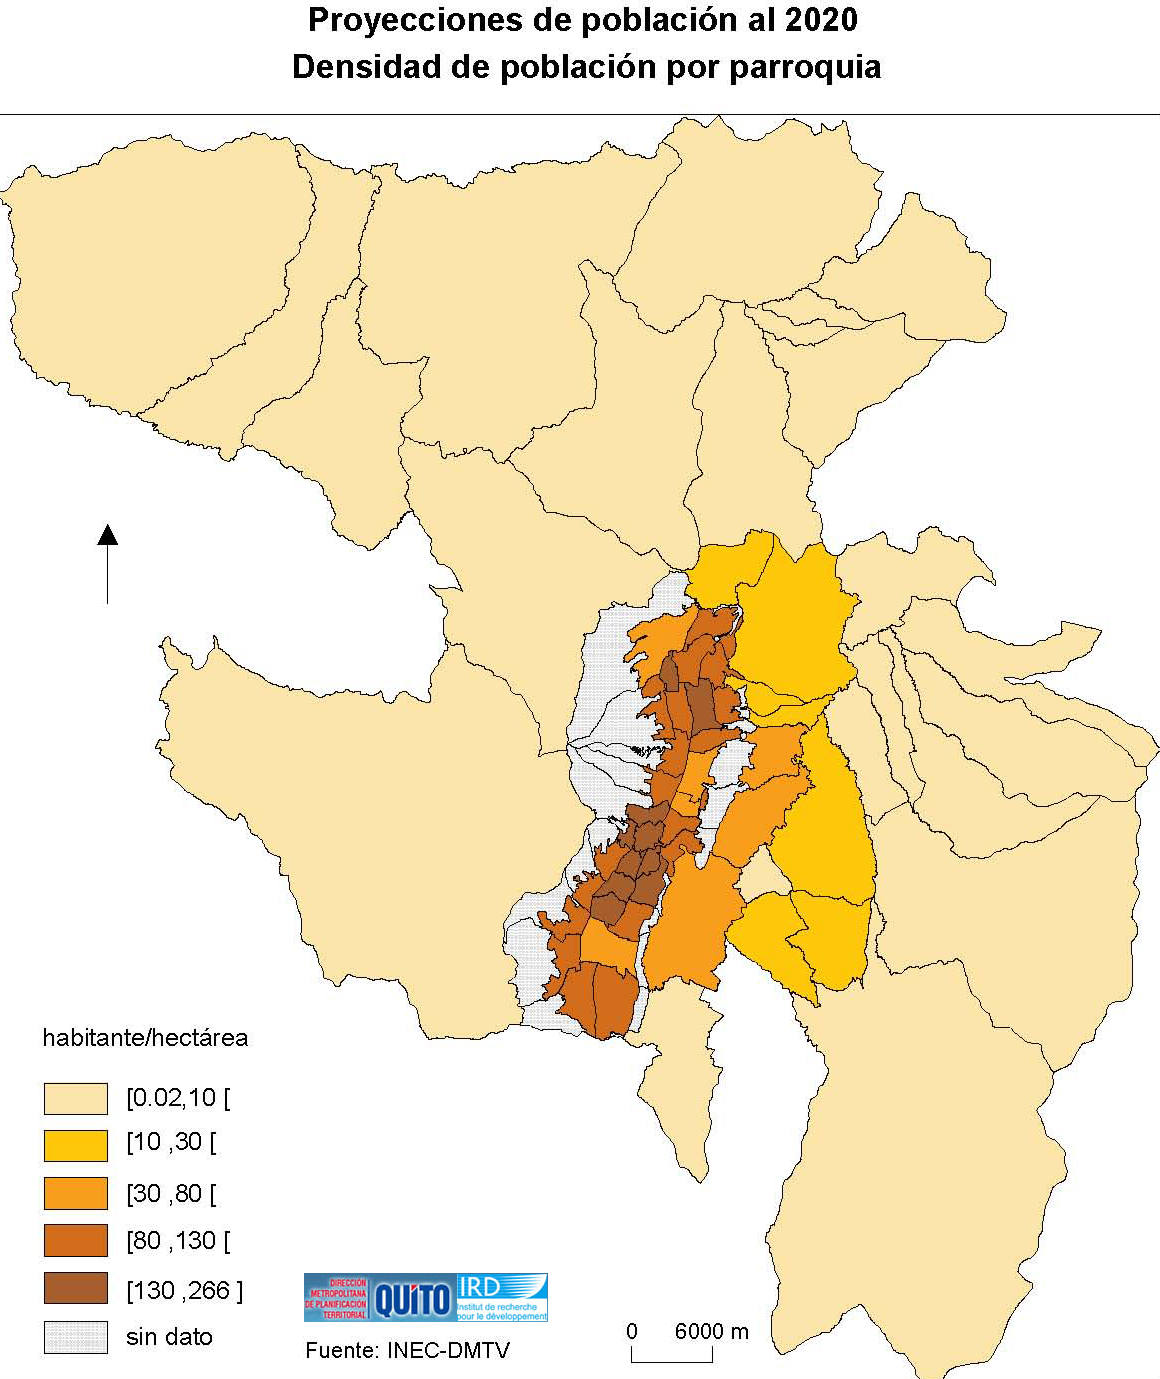 Population projections of the Metropolitan District of Quito in 2020